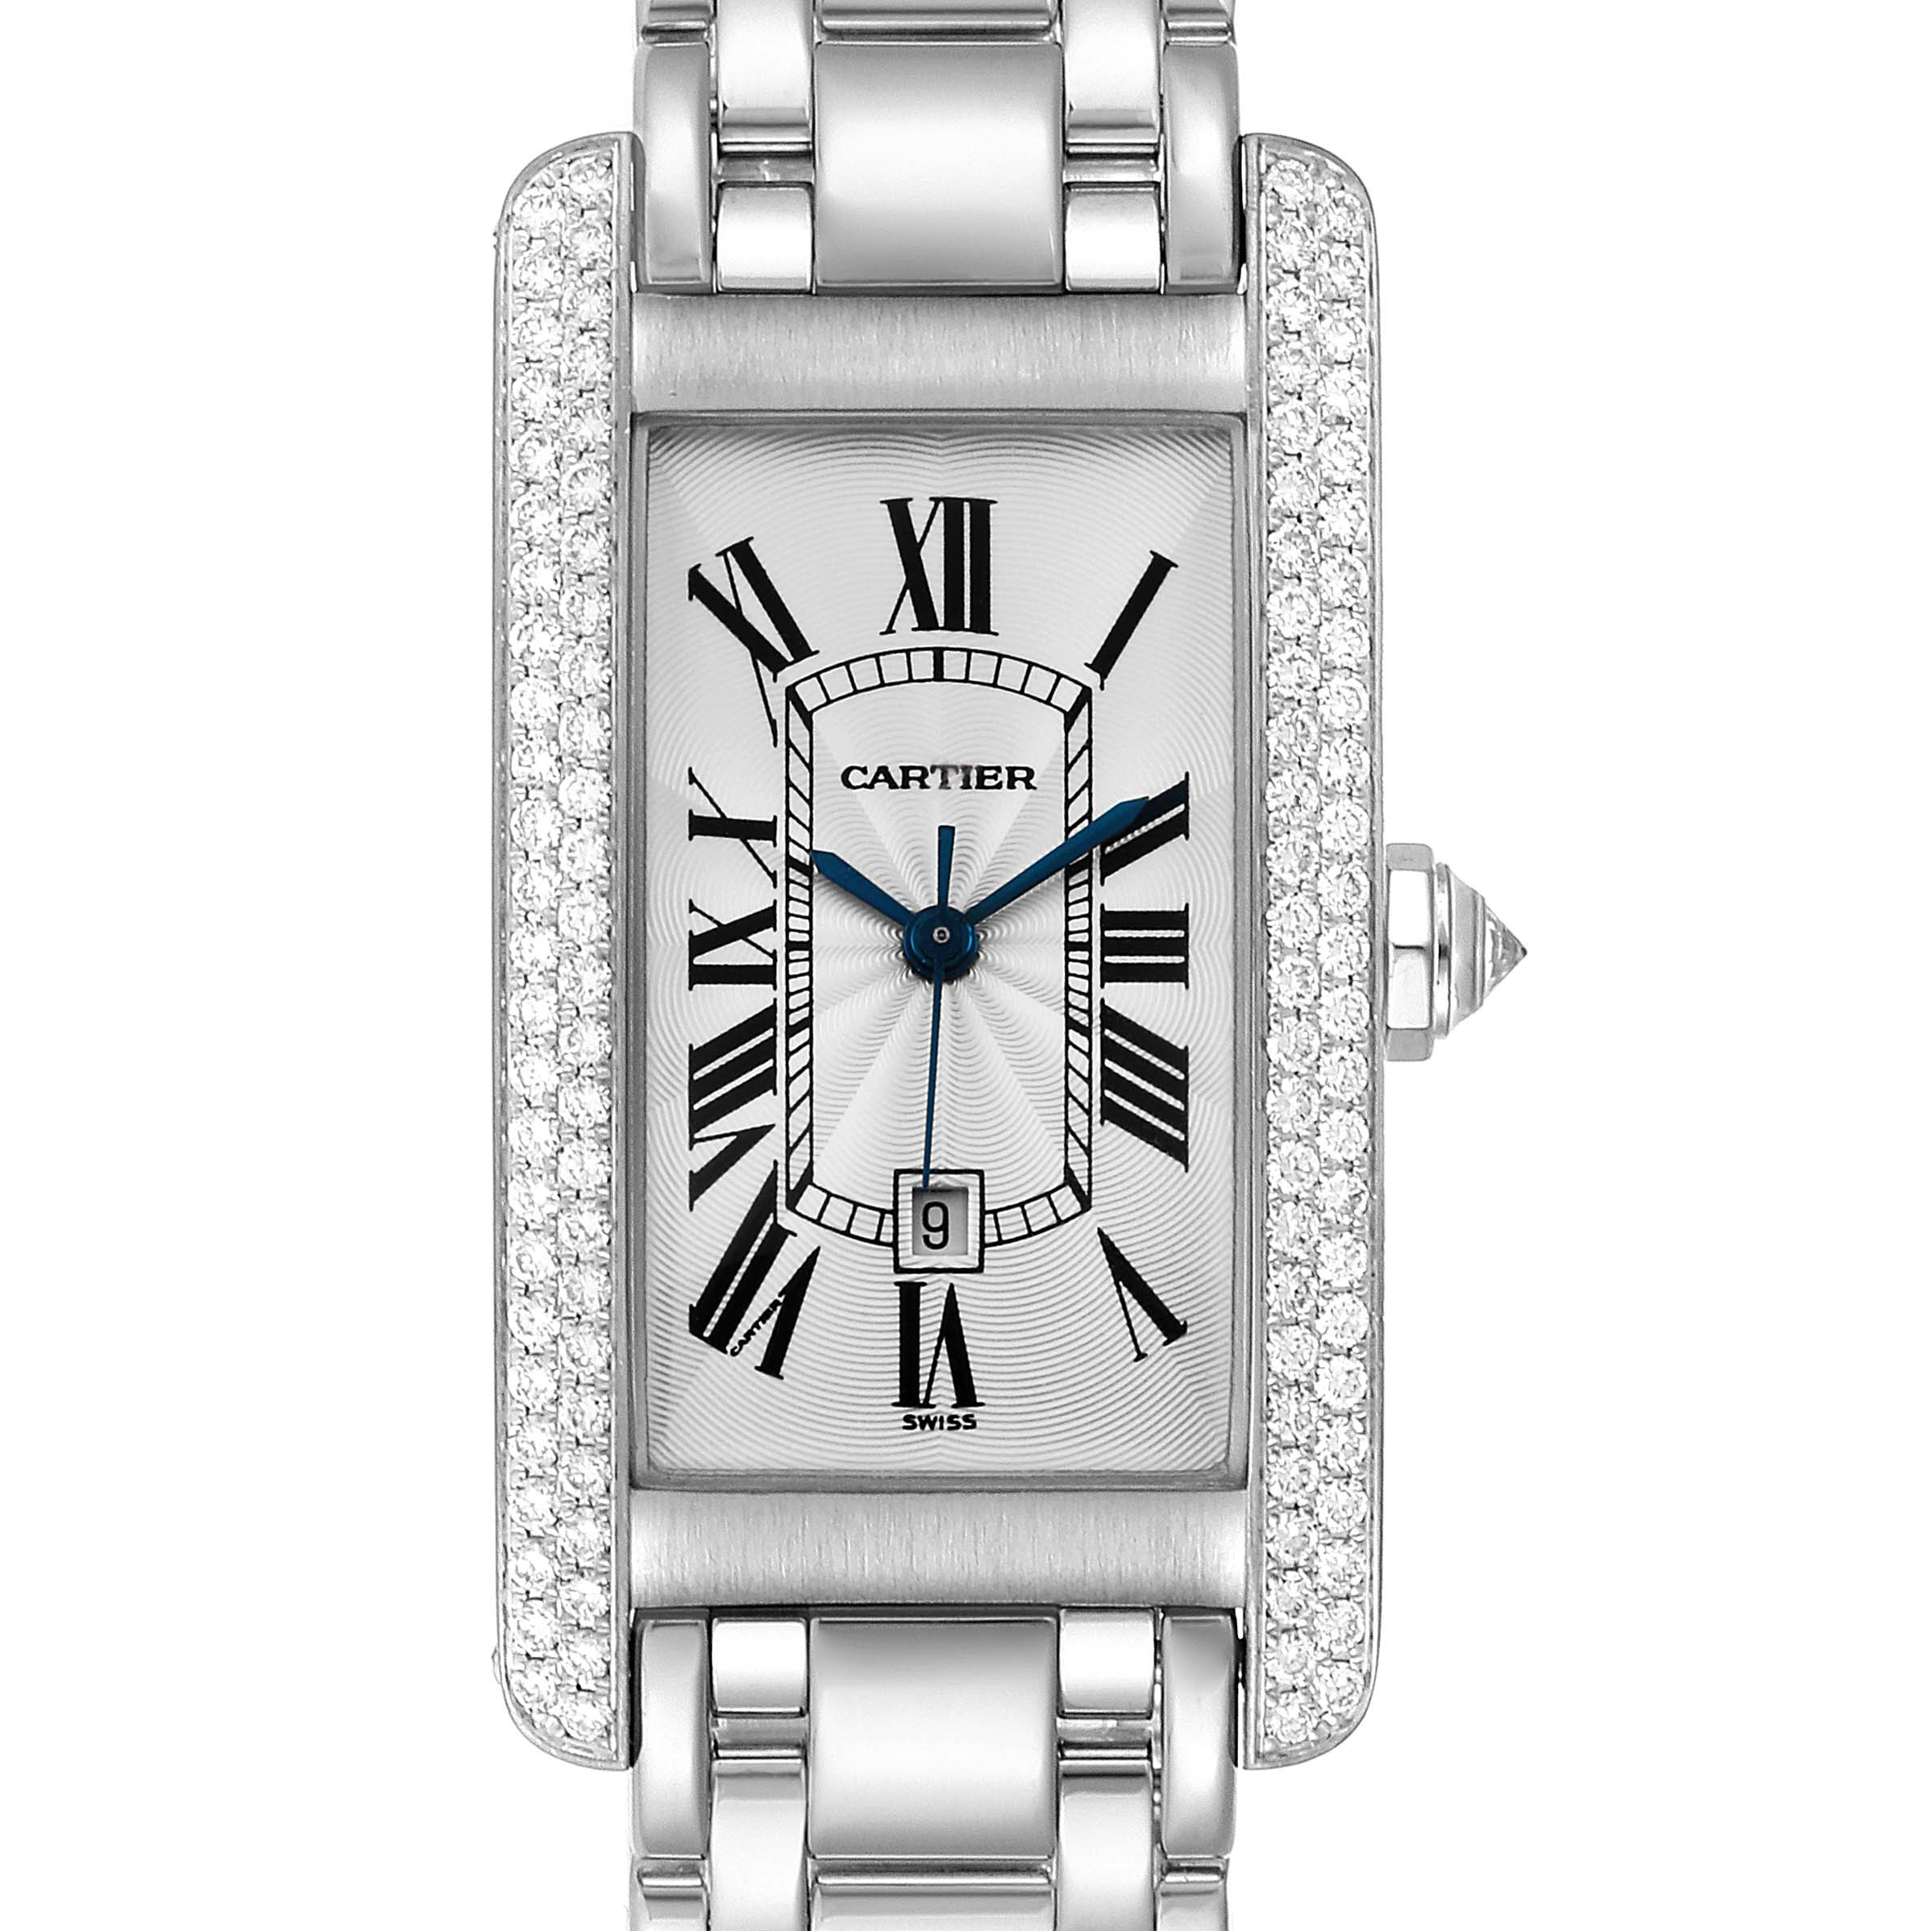 Photo of Cartier Tank Americaine Midsize 18K White Gold Diamond Watch 1726